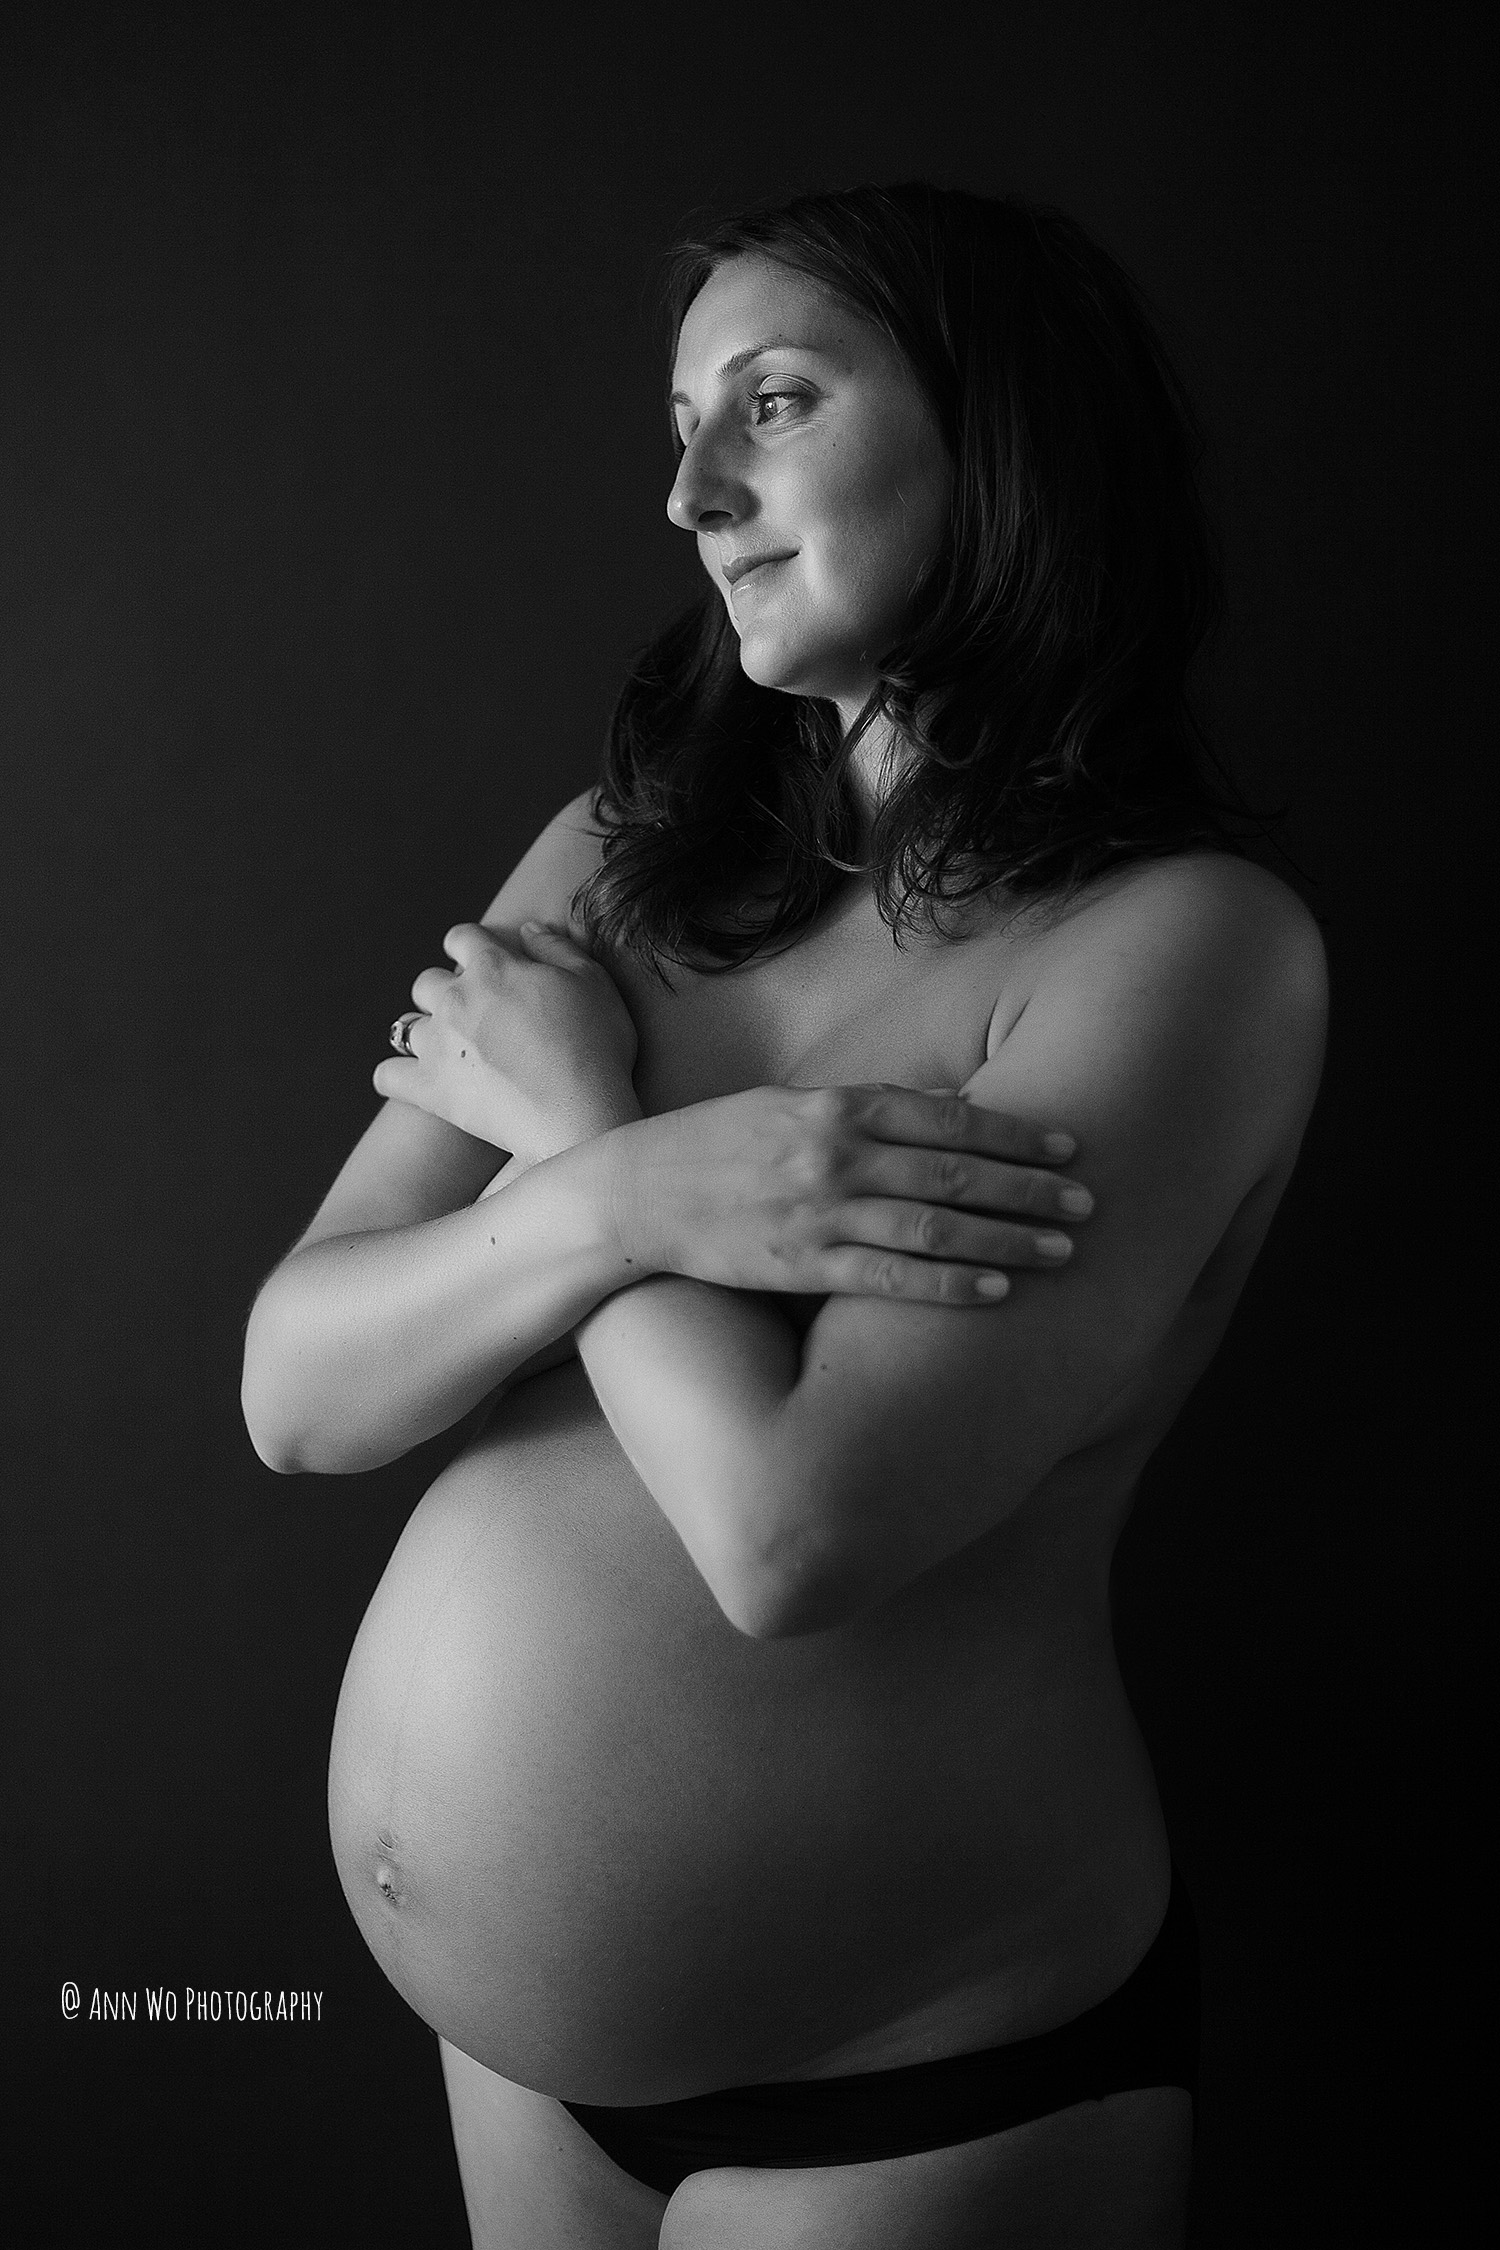 ann-wo-maternity-photographer-london36.JPG